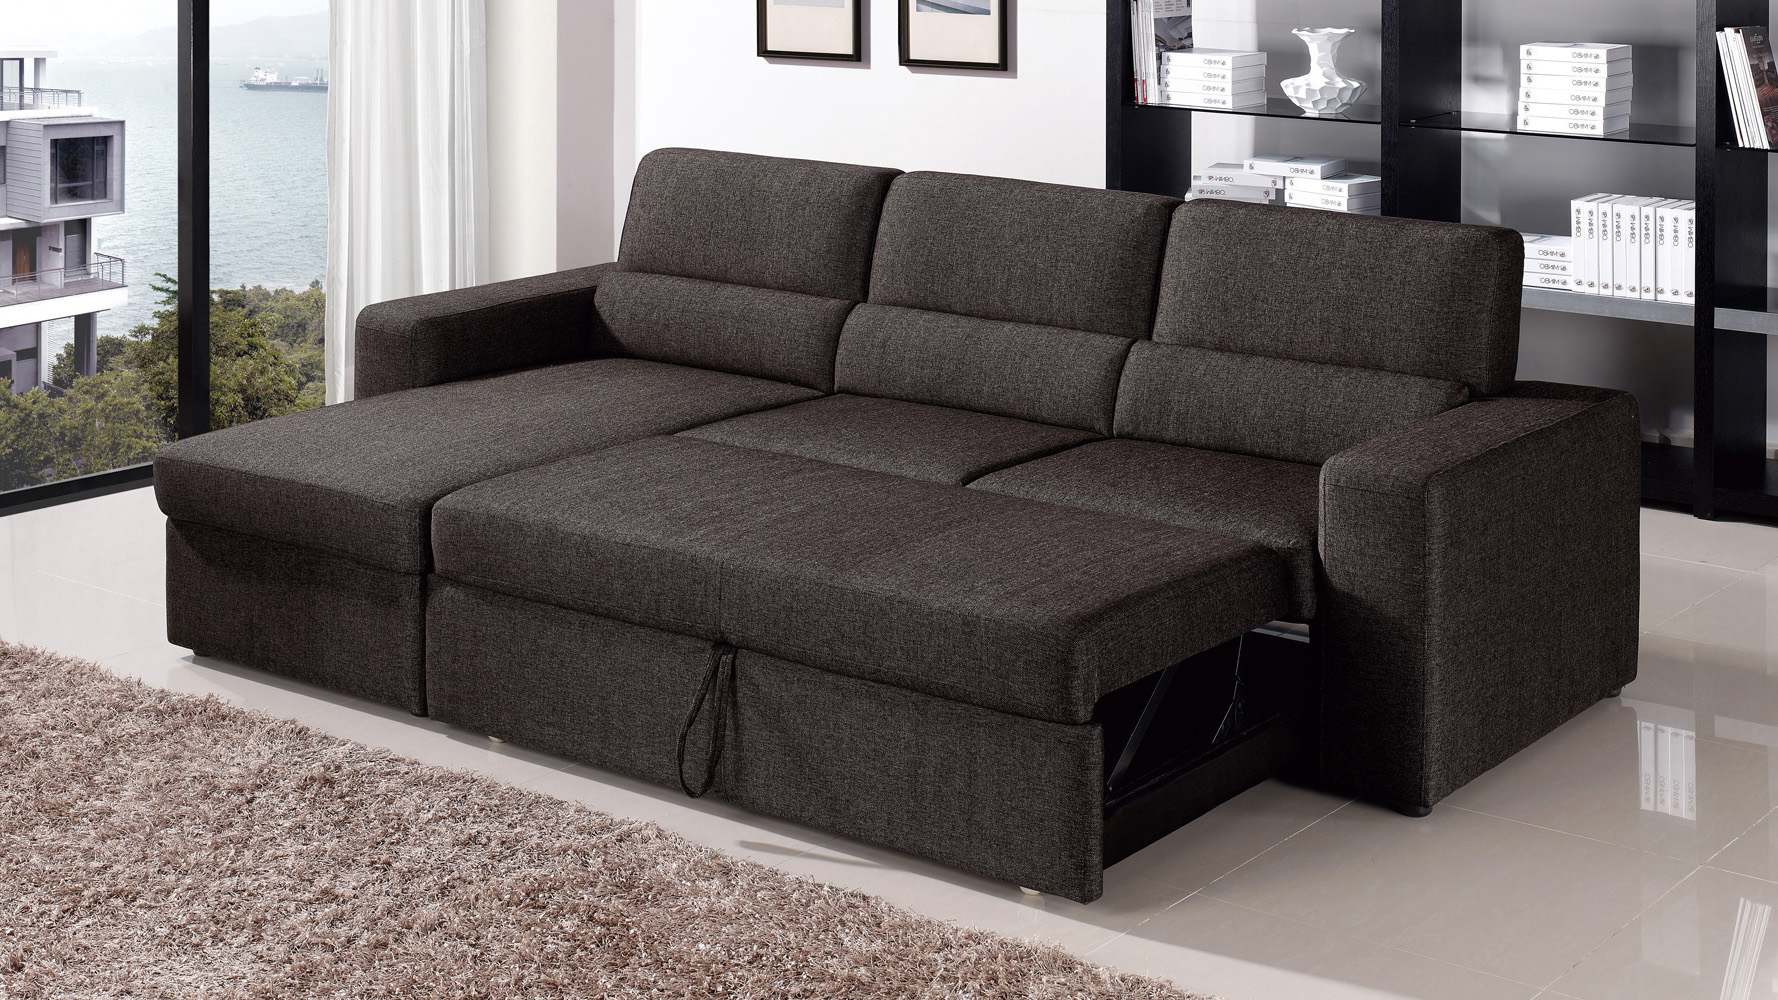 Black brown clubber sleeper sectional sofa zuri furniture Best loveseats